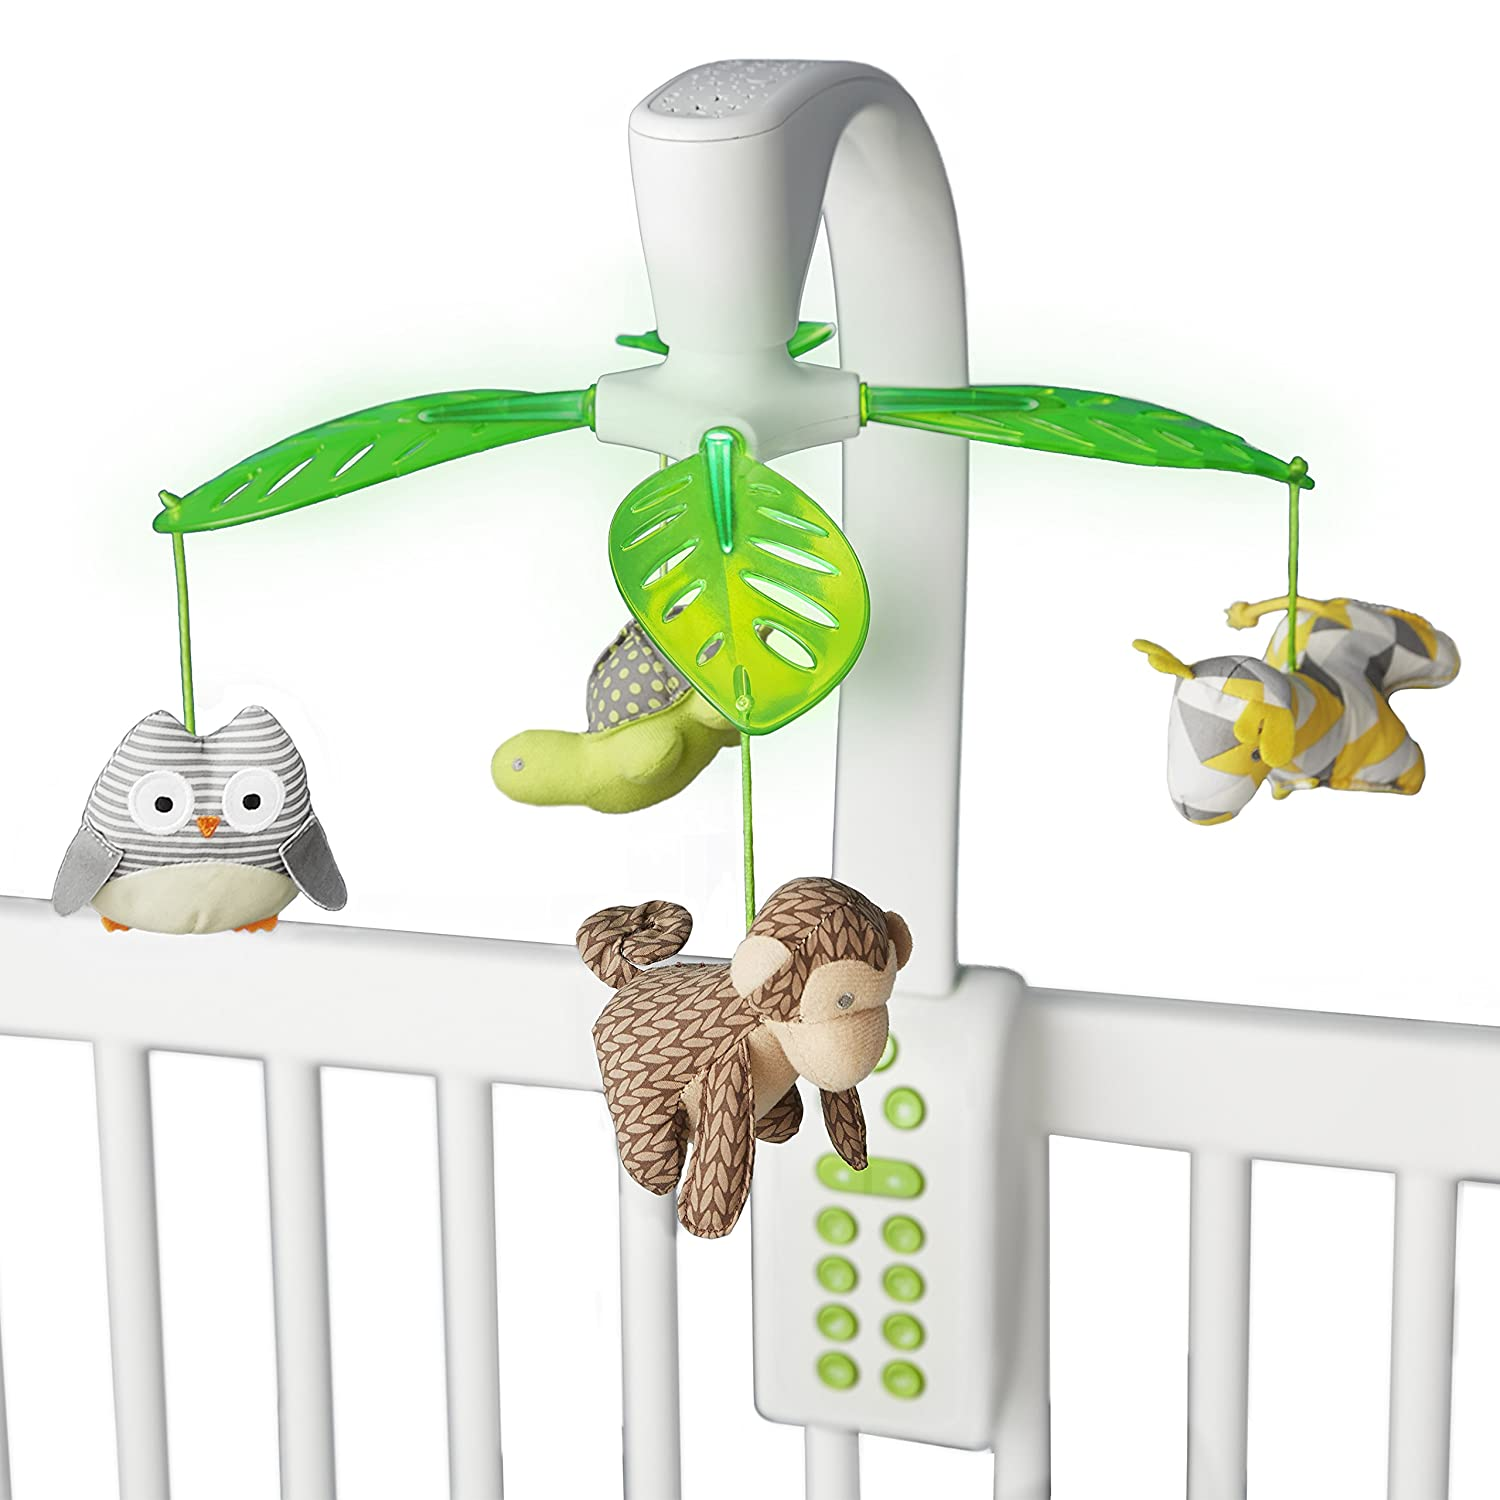 Skip Hop Baby Crib Mobile, Moonlight & Melodies With Projection, Safari 186500-CNSZP